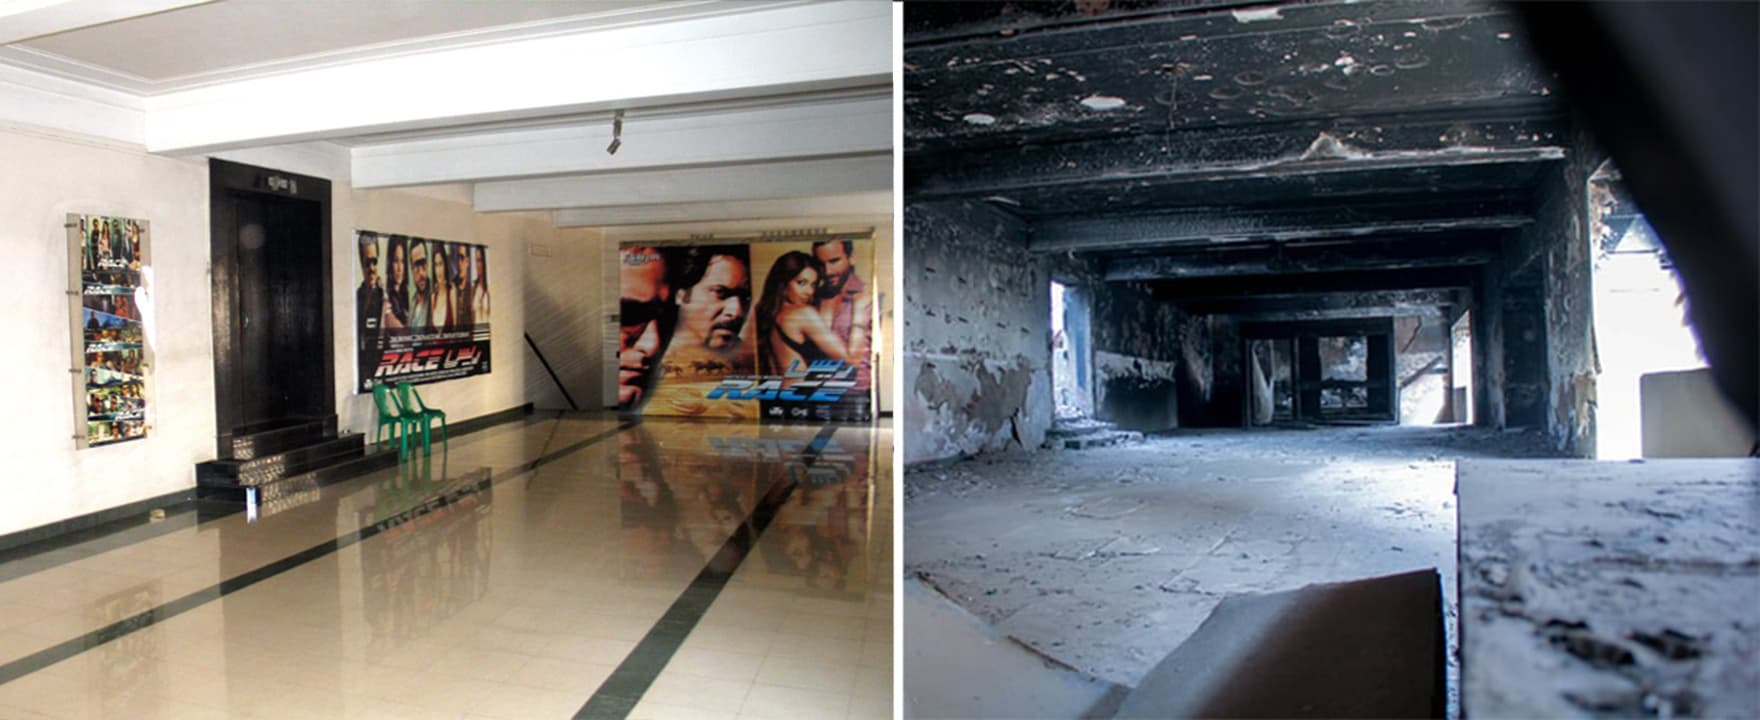 The old hallway inside the cinema (L) and the current charred remains  of the building (R). — Photo by Muhammad Umar, Nishat Cinema official Facebook page